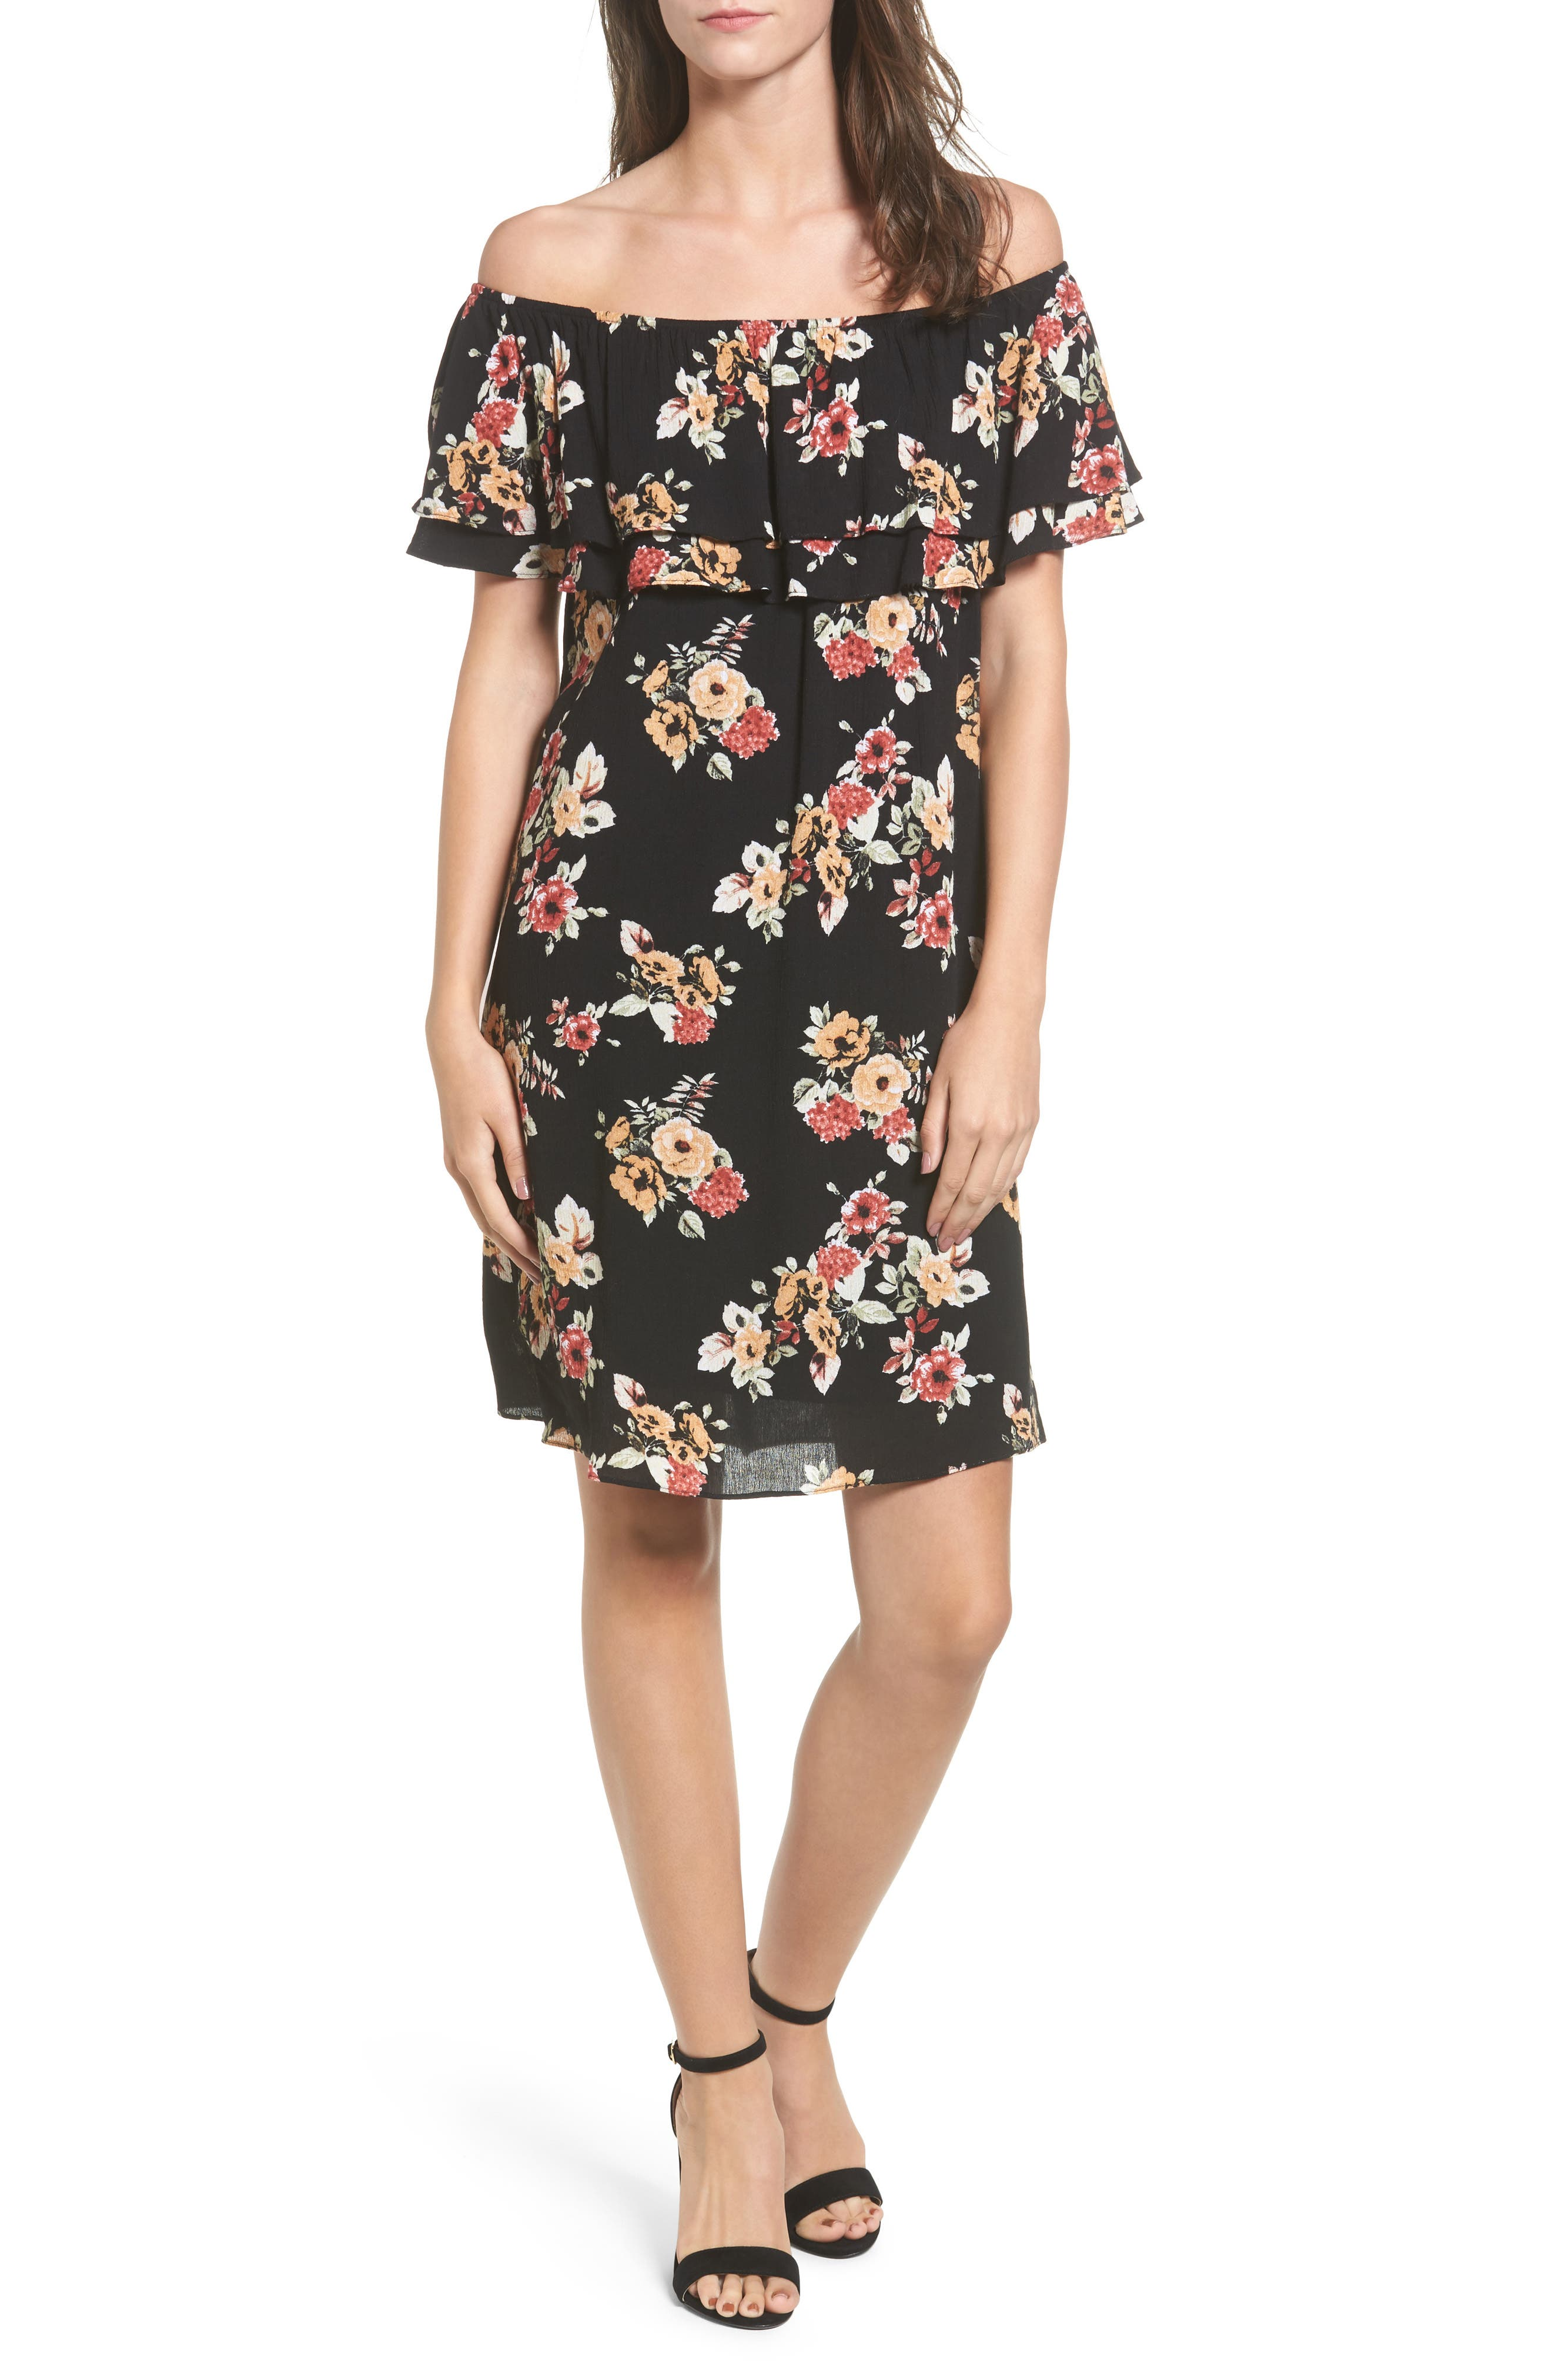 Everly Ruffle Off the Shoulder Dress